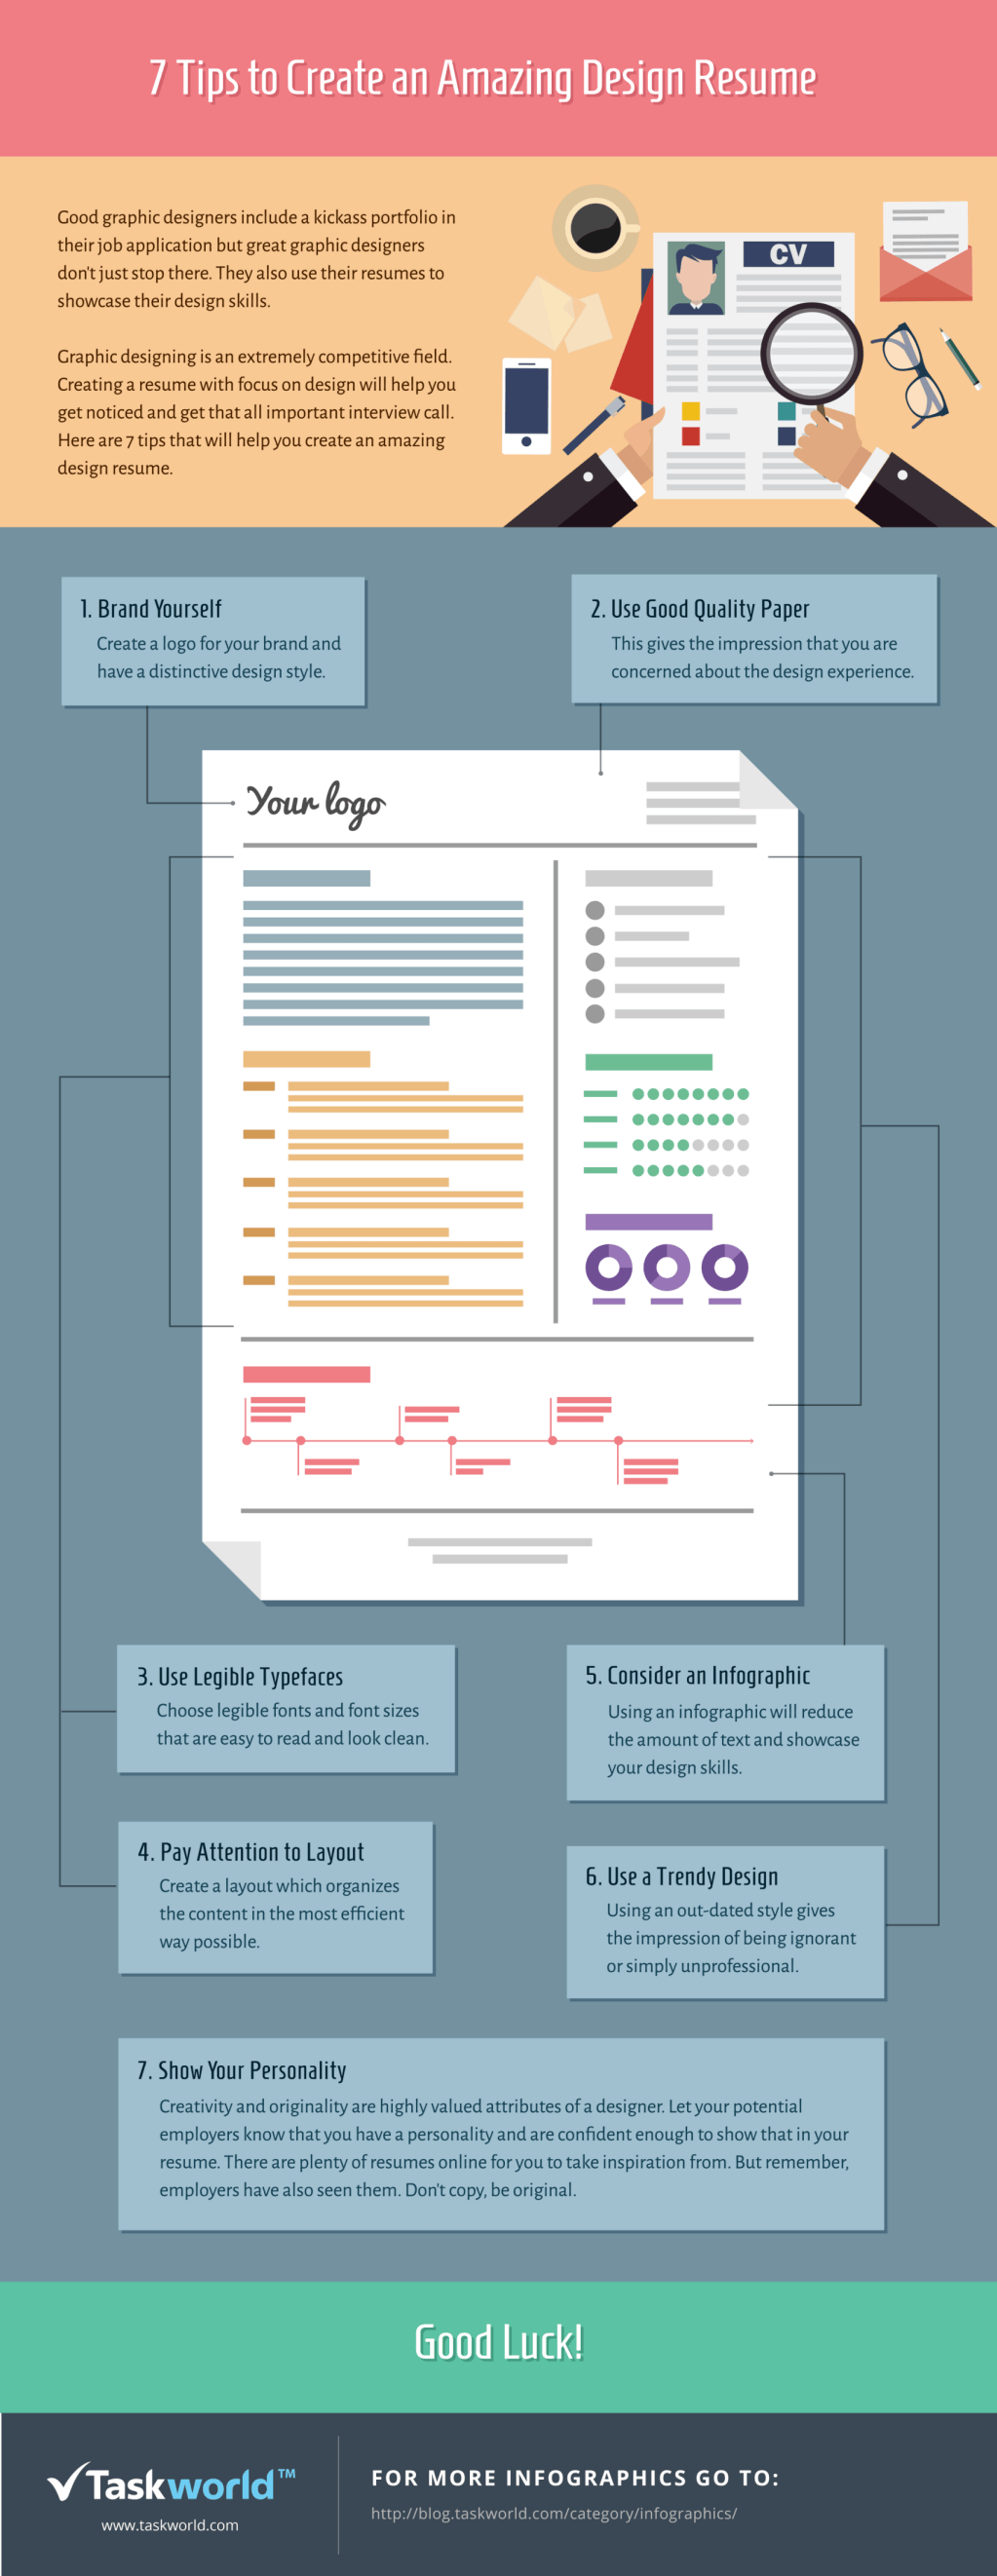 7 tips to create an amazing design resume infographic amazing